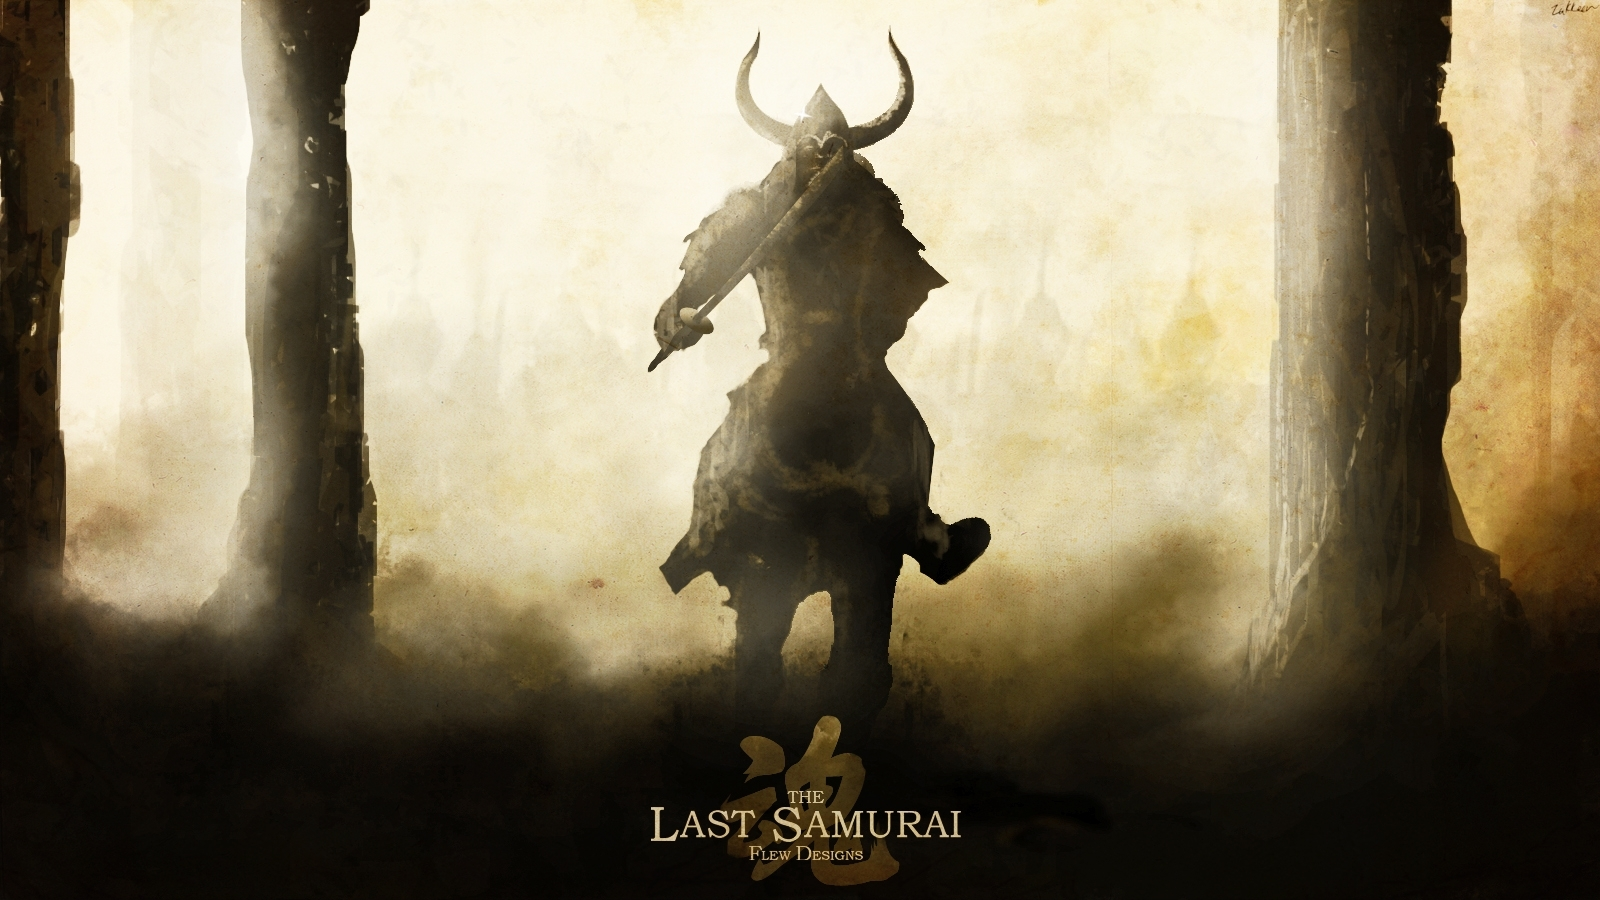 15 the last samurai fonds d'écran hd | arrière-plans - wallpaper abyss